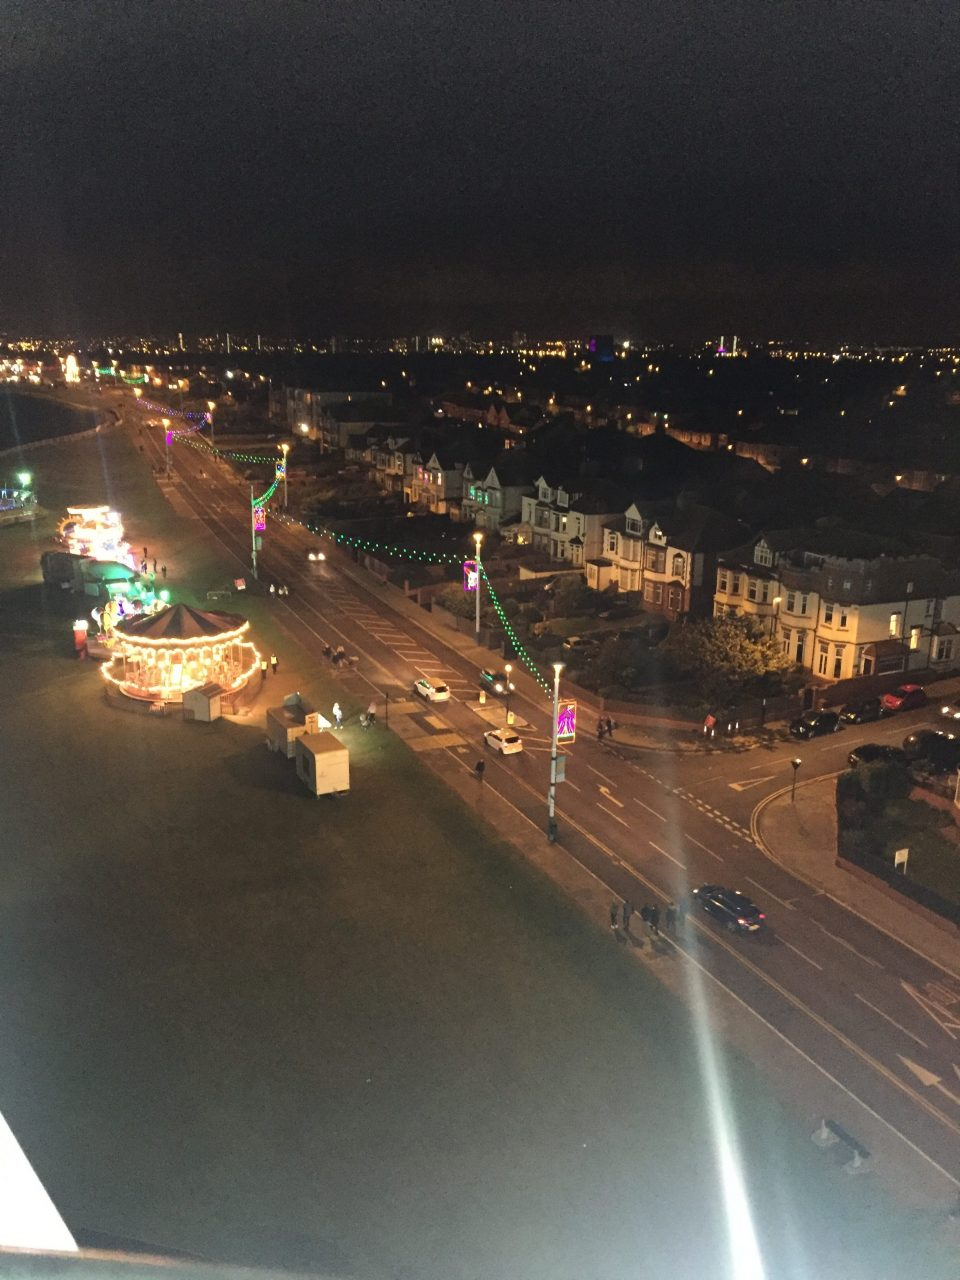 View from the Big Wheel at the Sunderland Lights